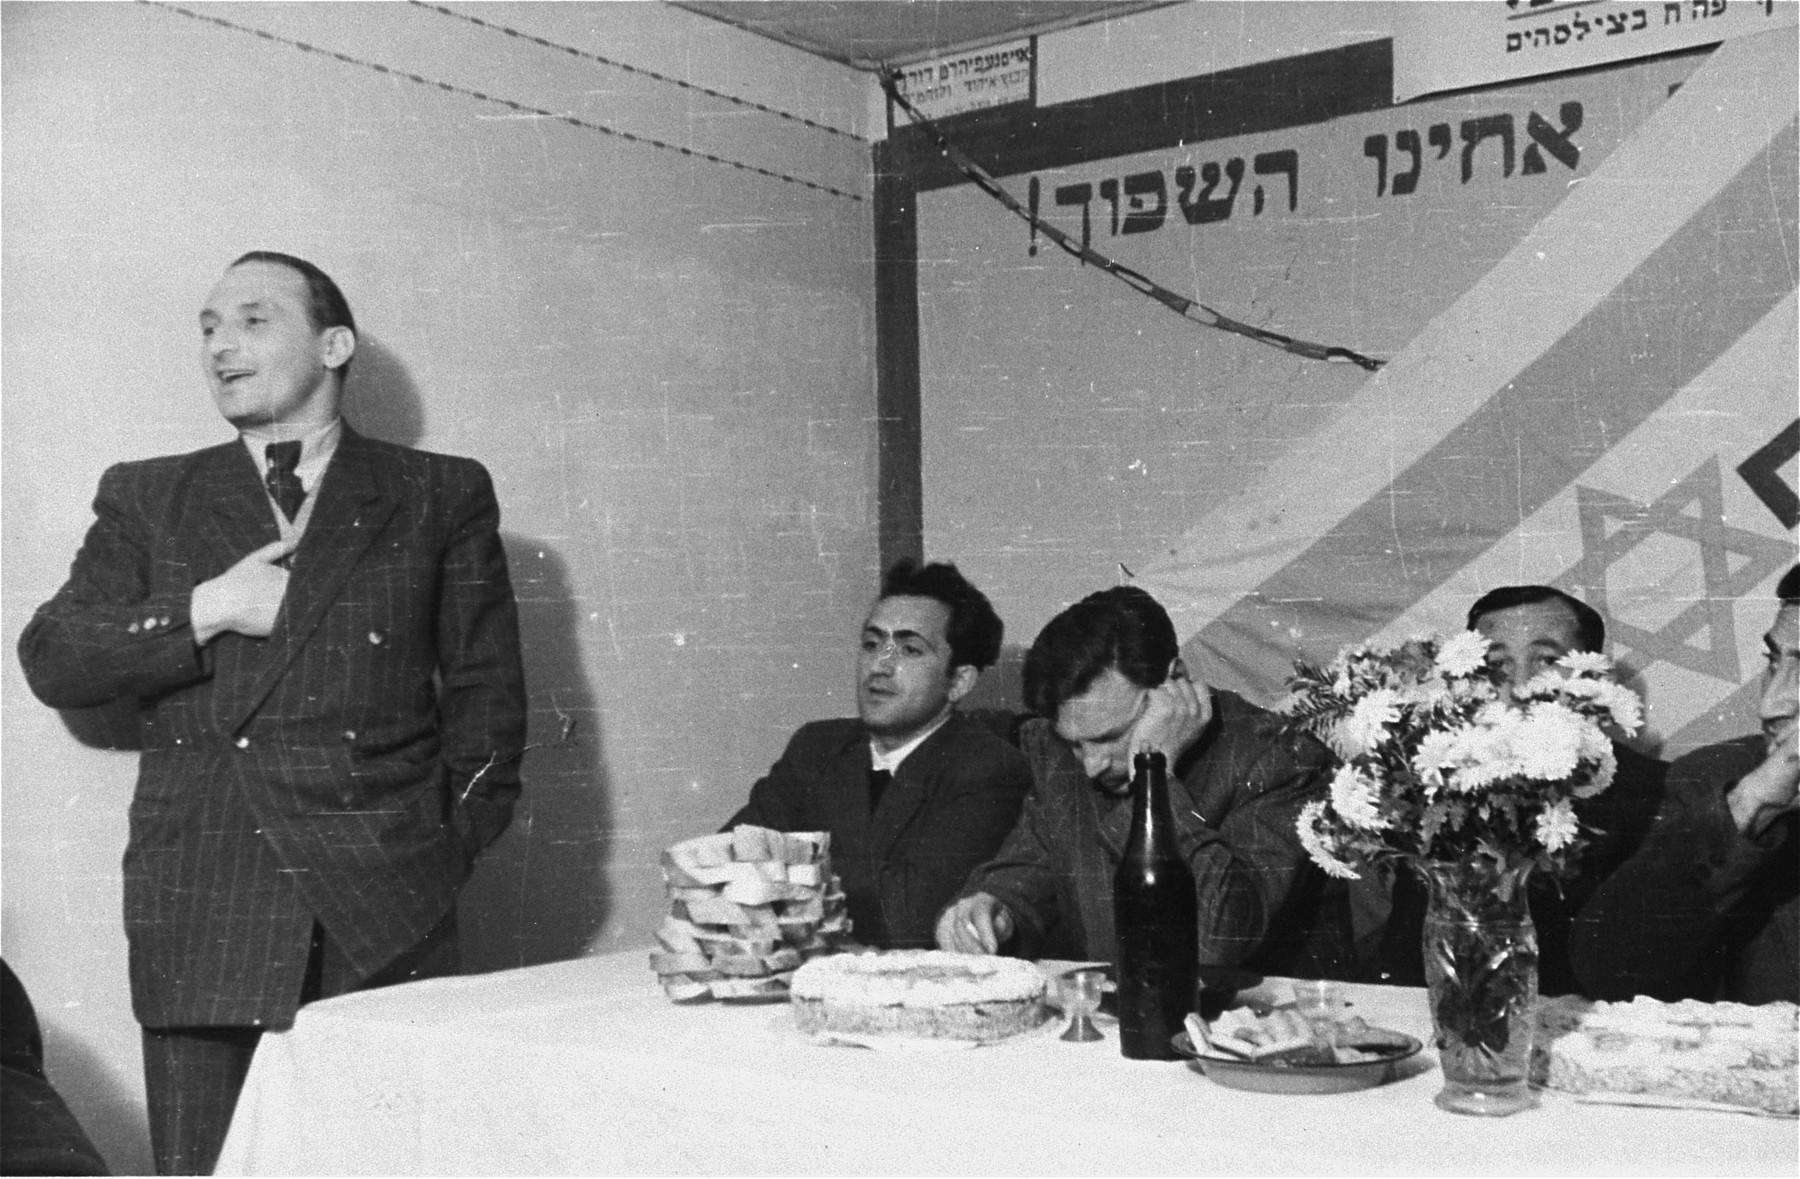 Zionist political meeting in the Zeilsheim displaced person's camp.  Seated third from the left looking down is Yitzhak Zuckerman.